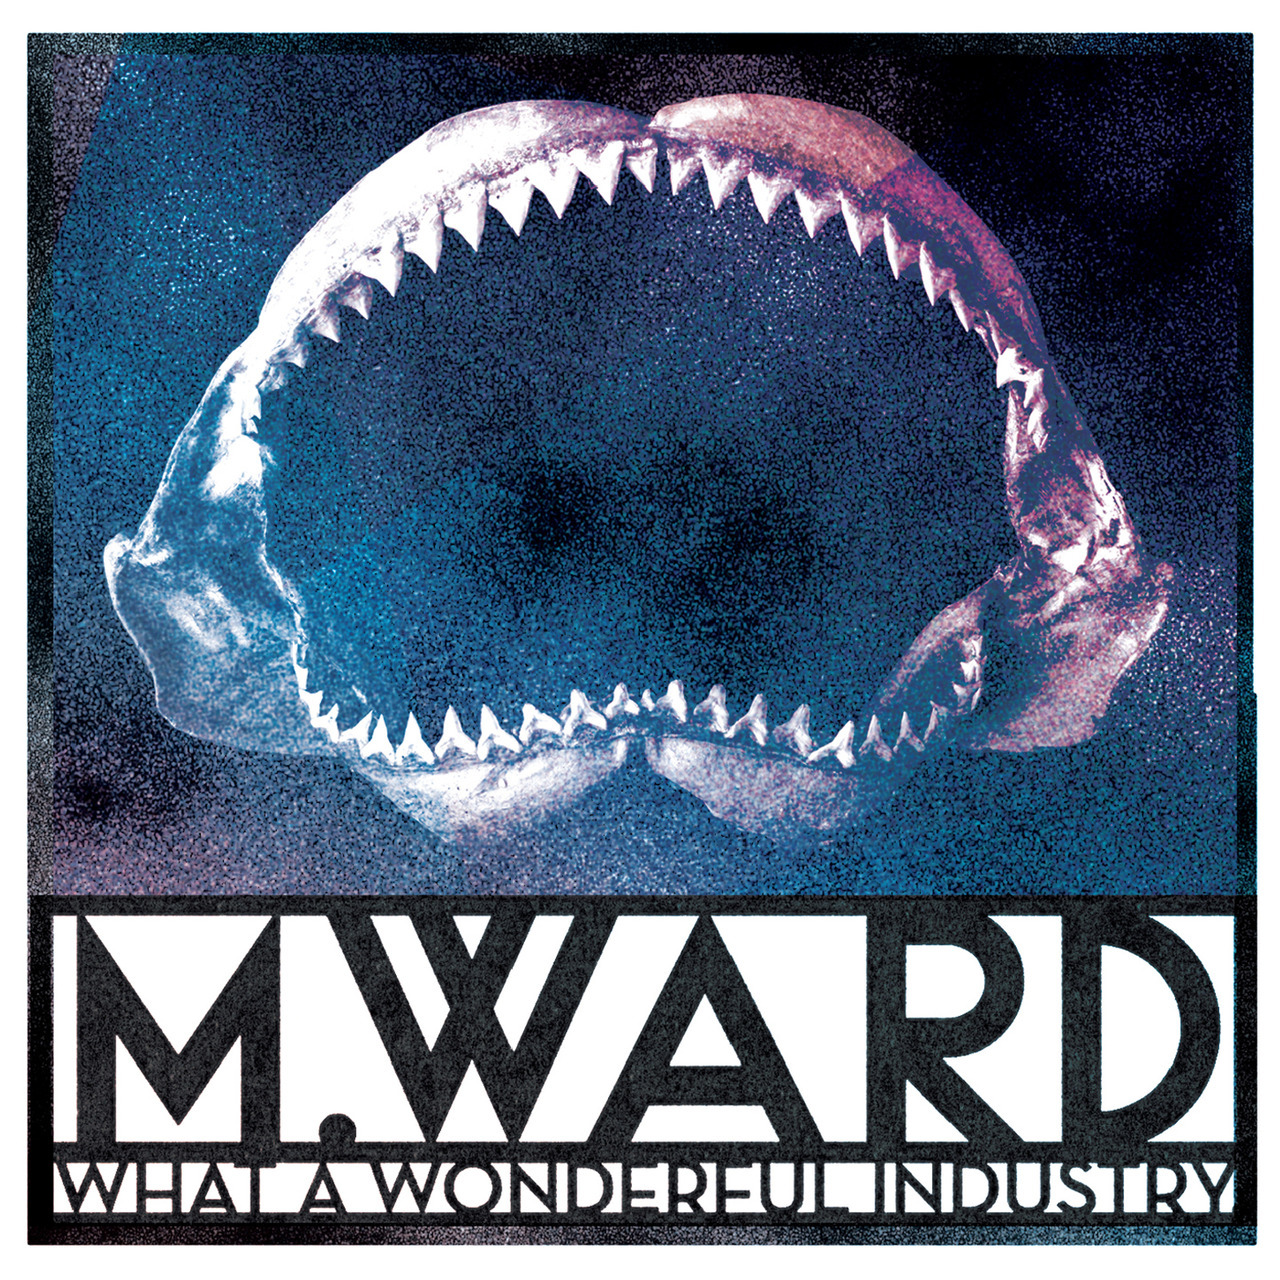 m ward what a wonderful industry shark jaw album cover artwork